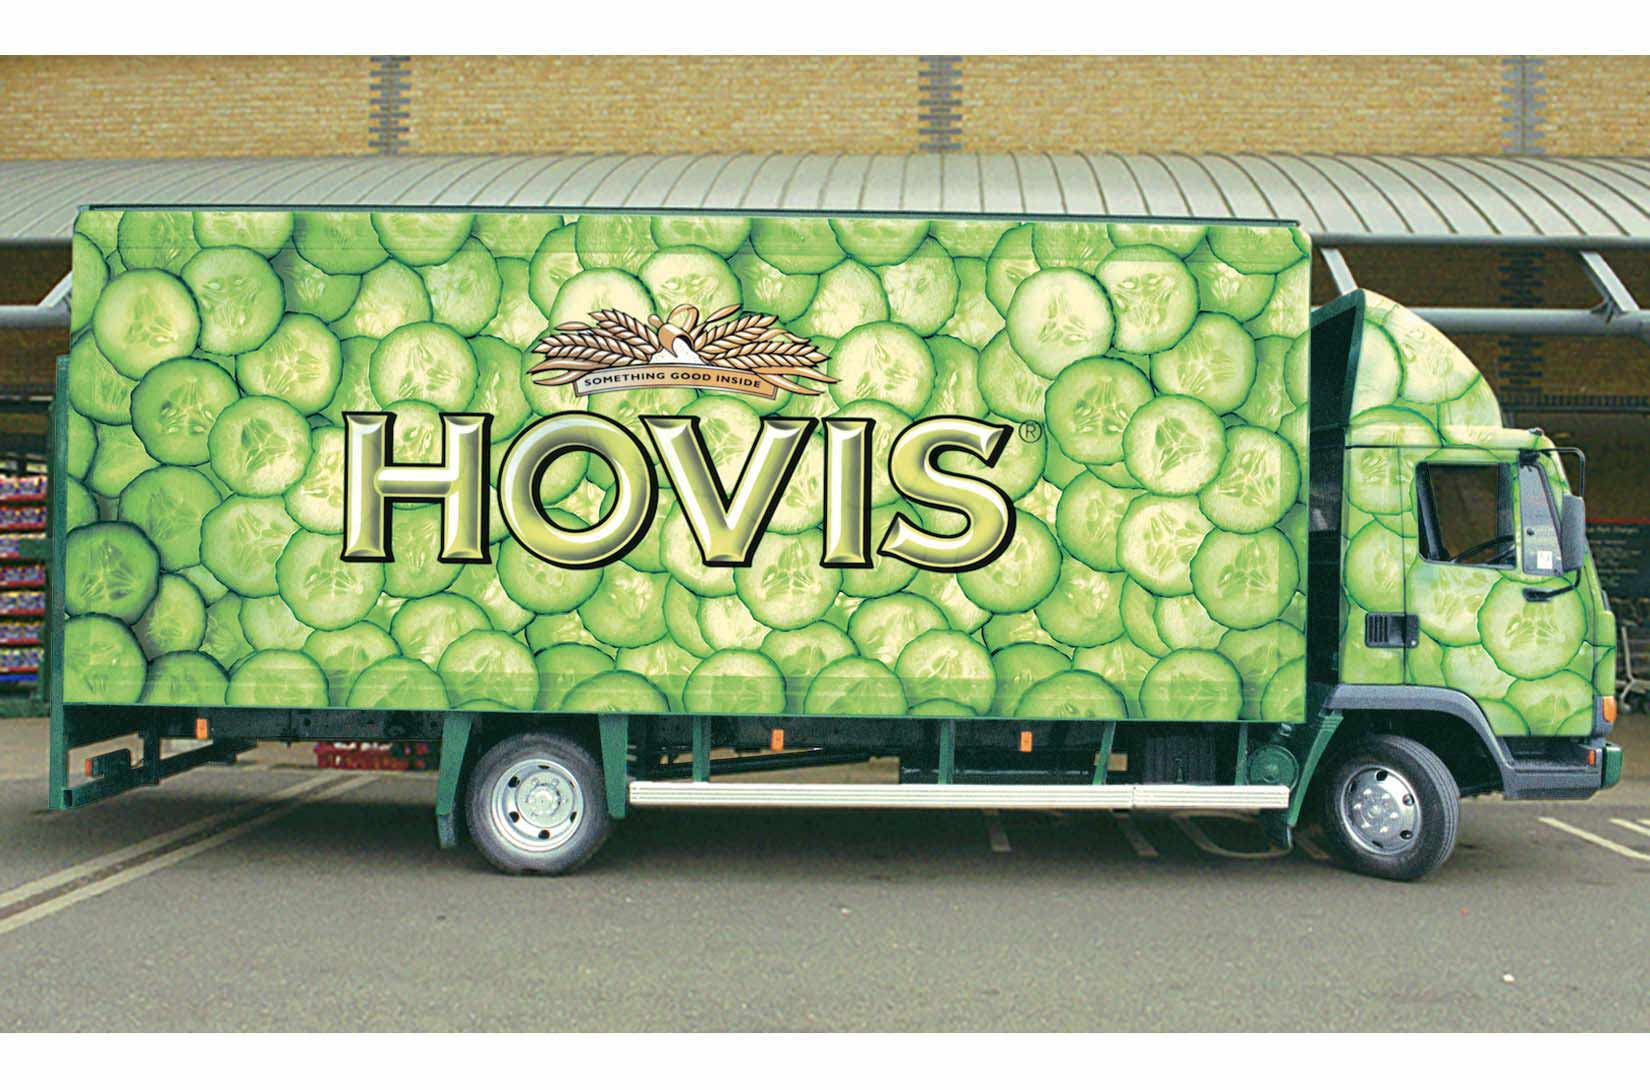 WMH-HOVIS-CUCMBER-TRUCK-IMAGE-WEB image